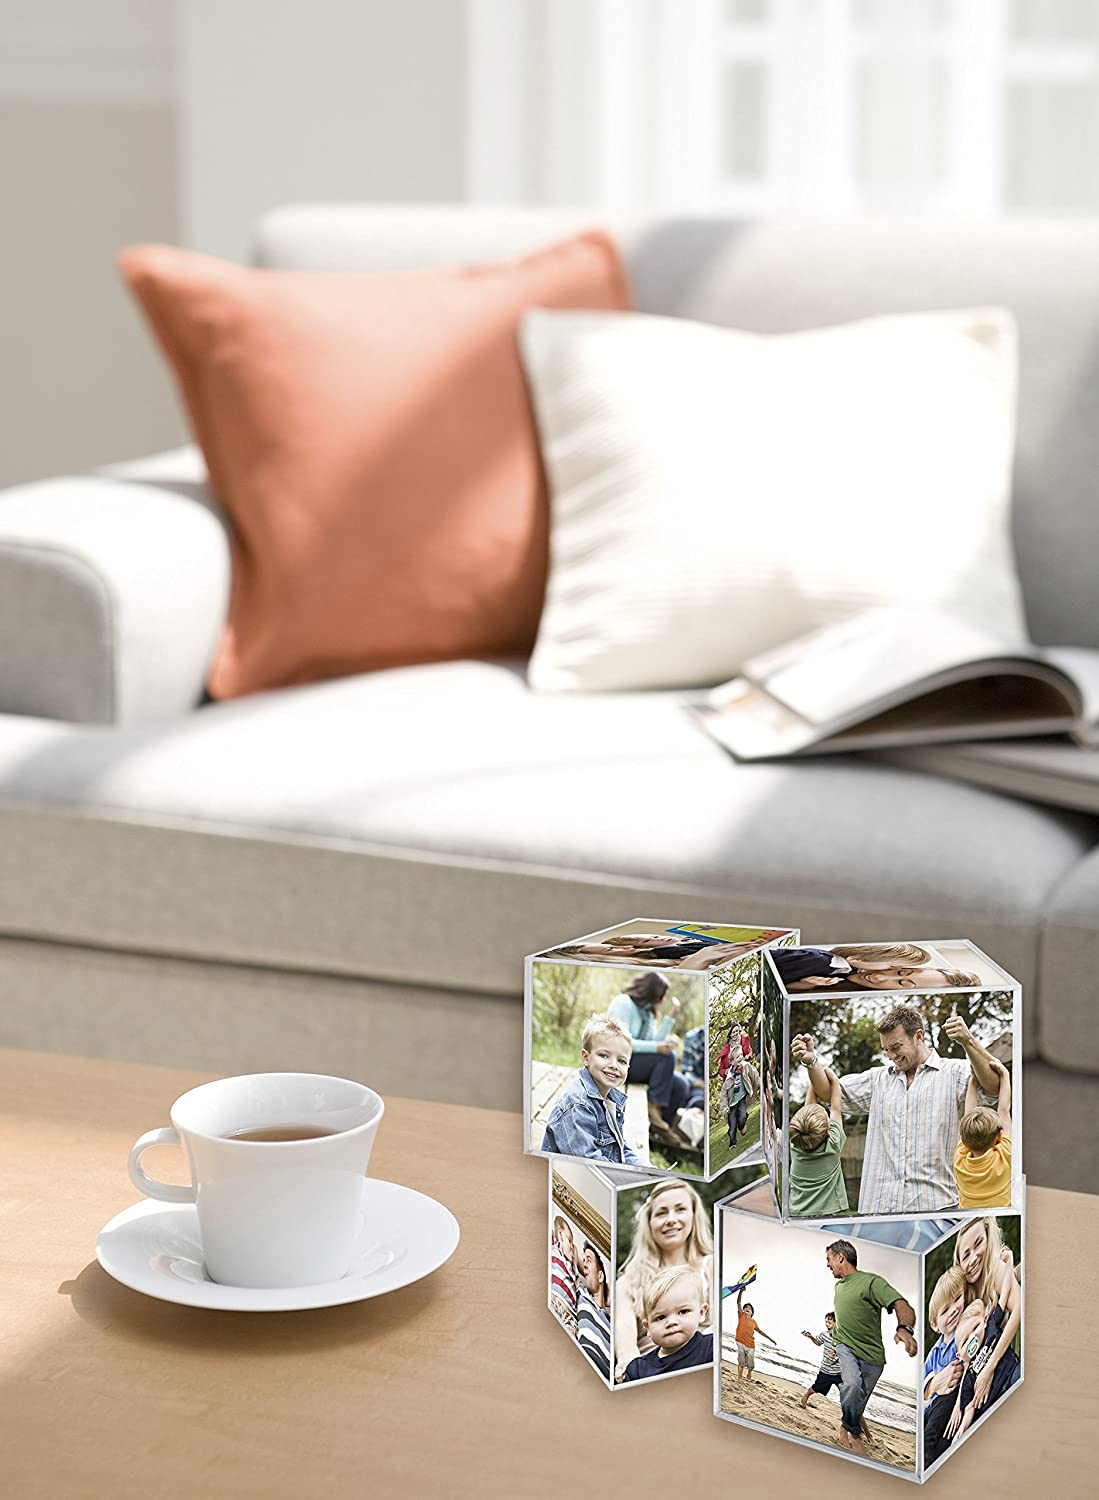 MCS 3.25x3.25 Inch Clear Plastic 6 Sided Photo Cube 4-Pack Clear 65750